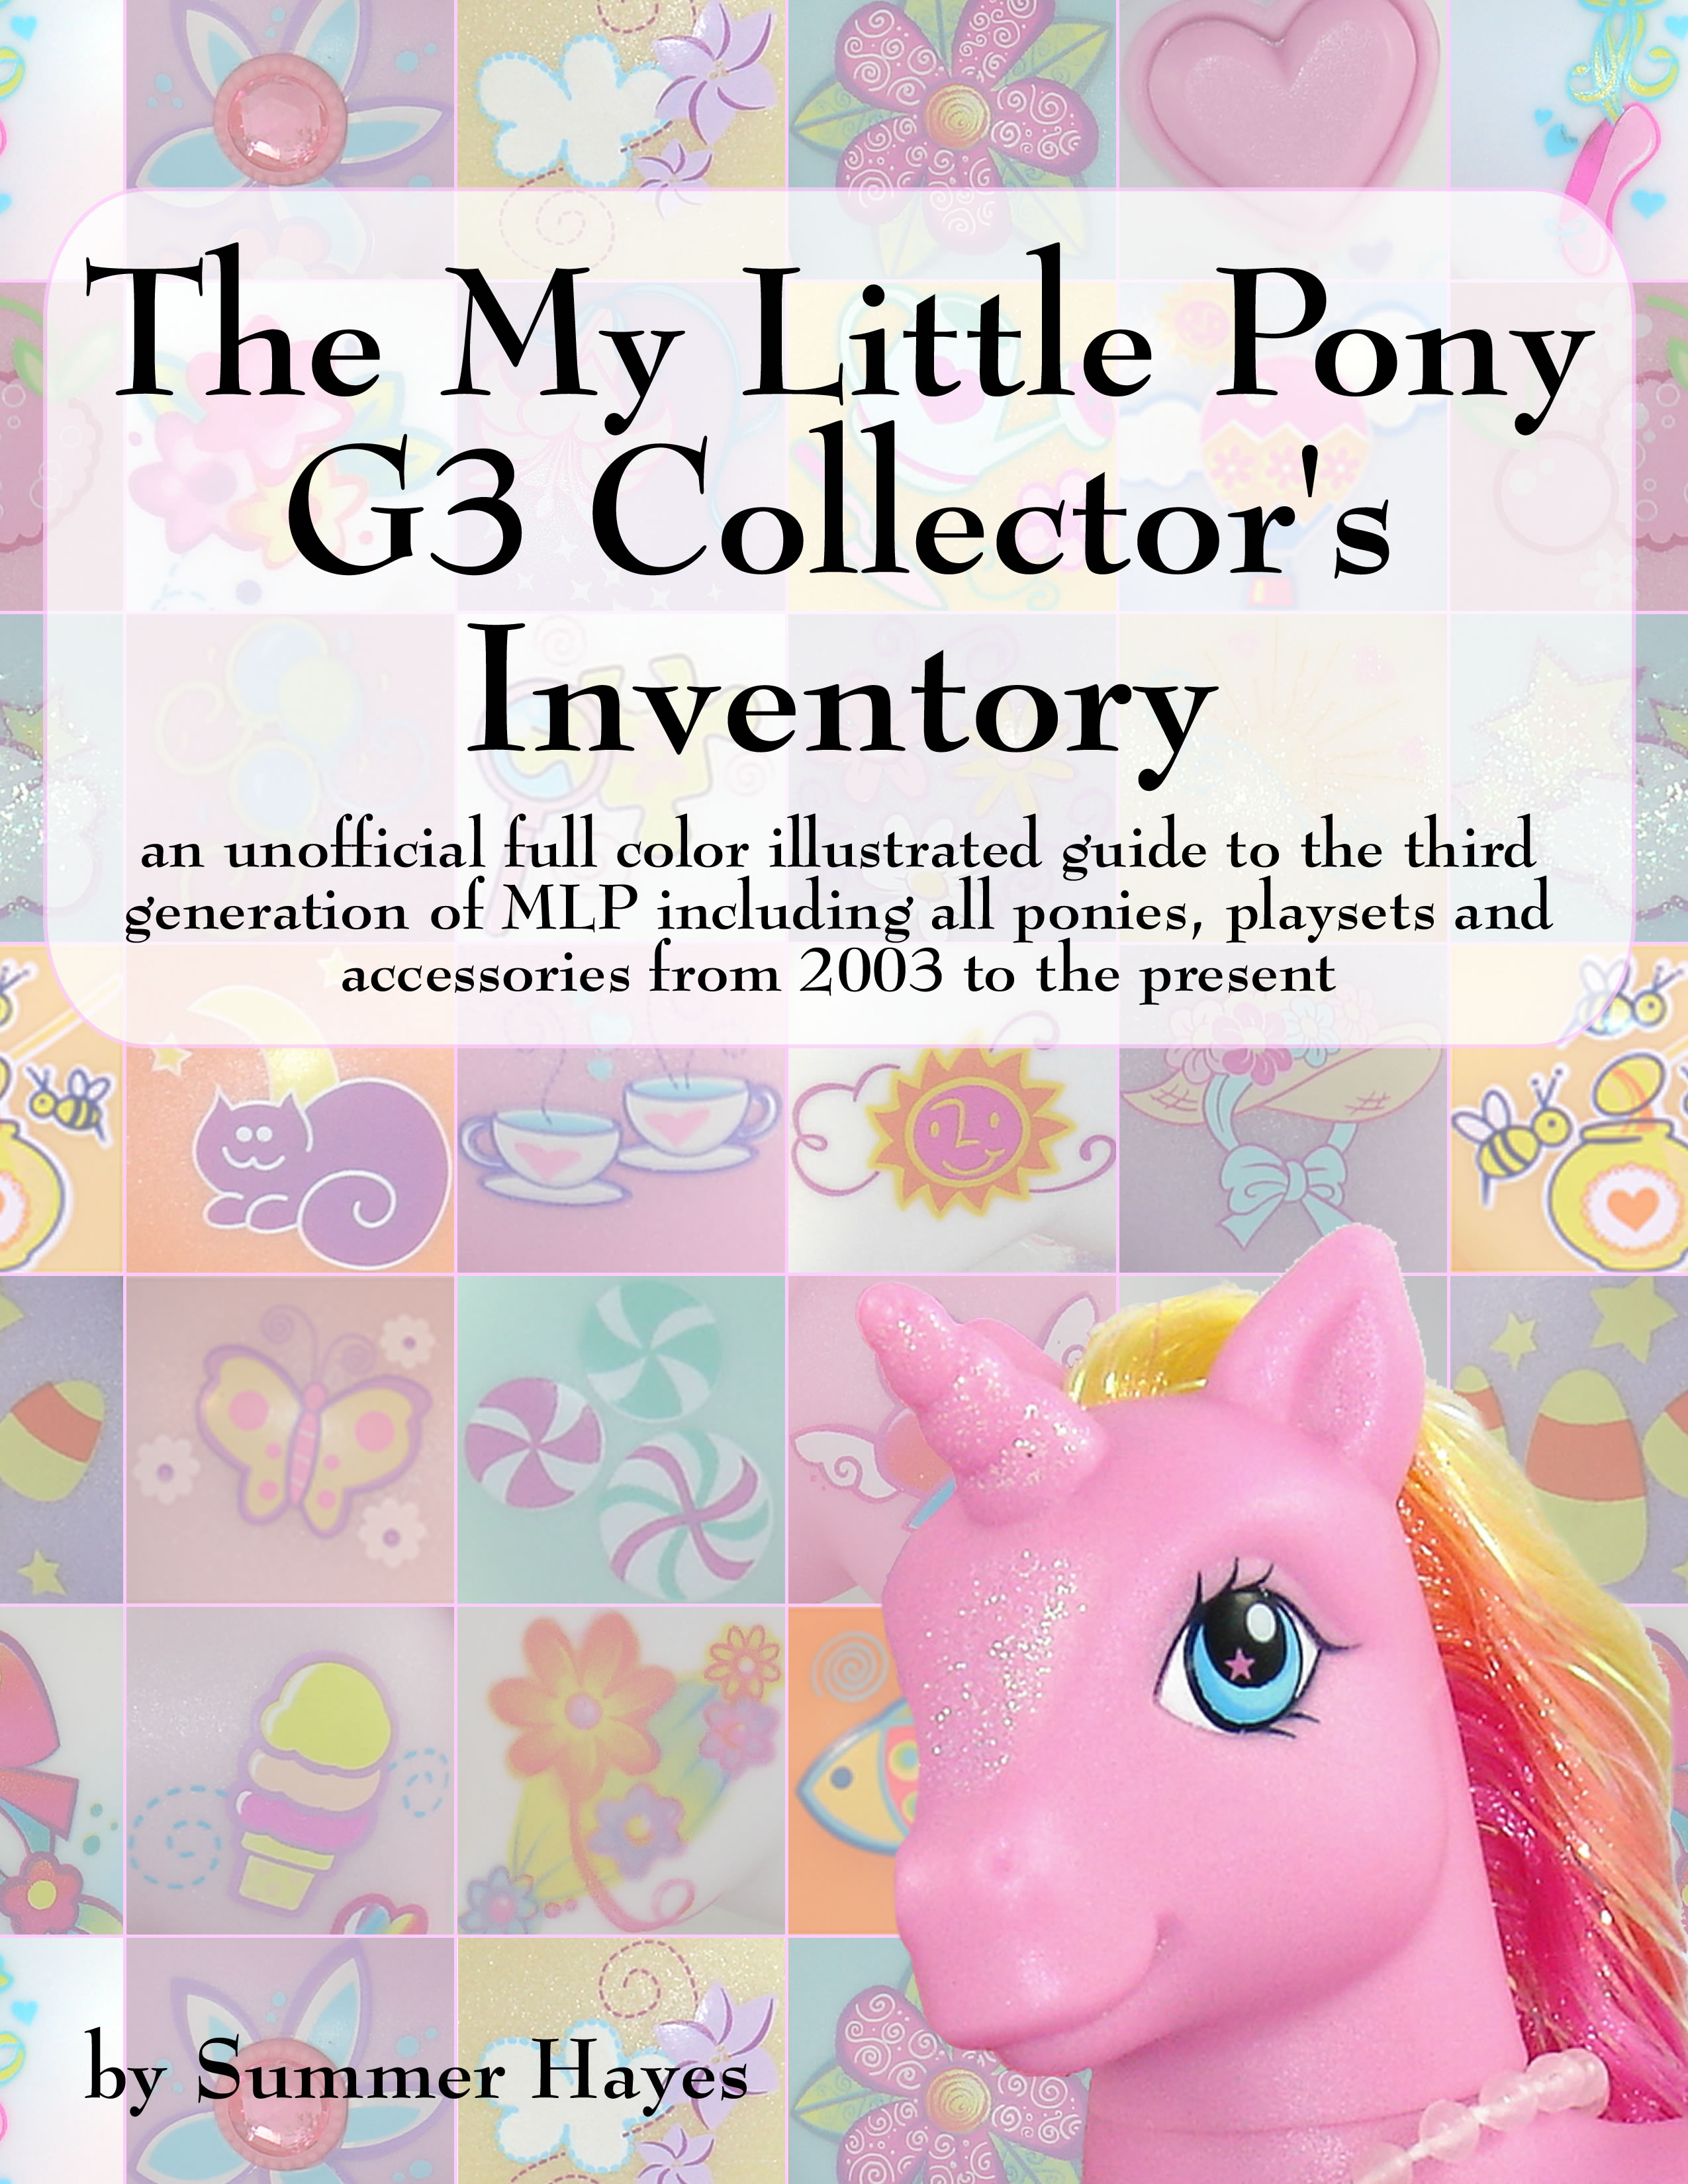 the my little pony g3 collector s inventory brings the world of mlp